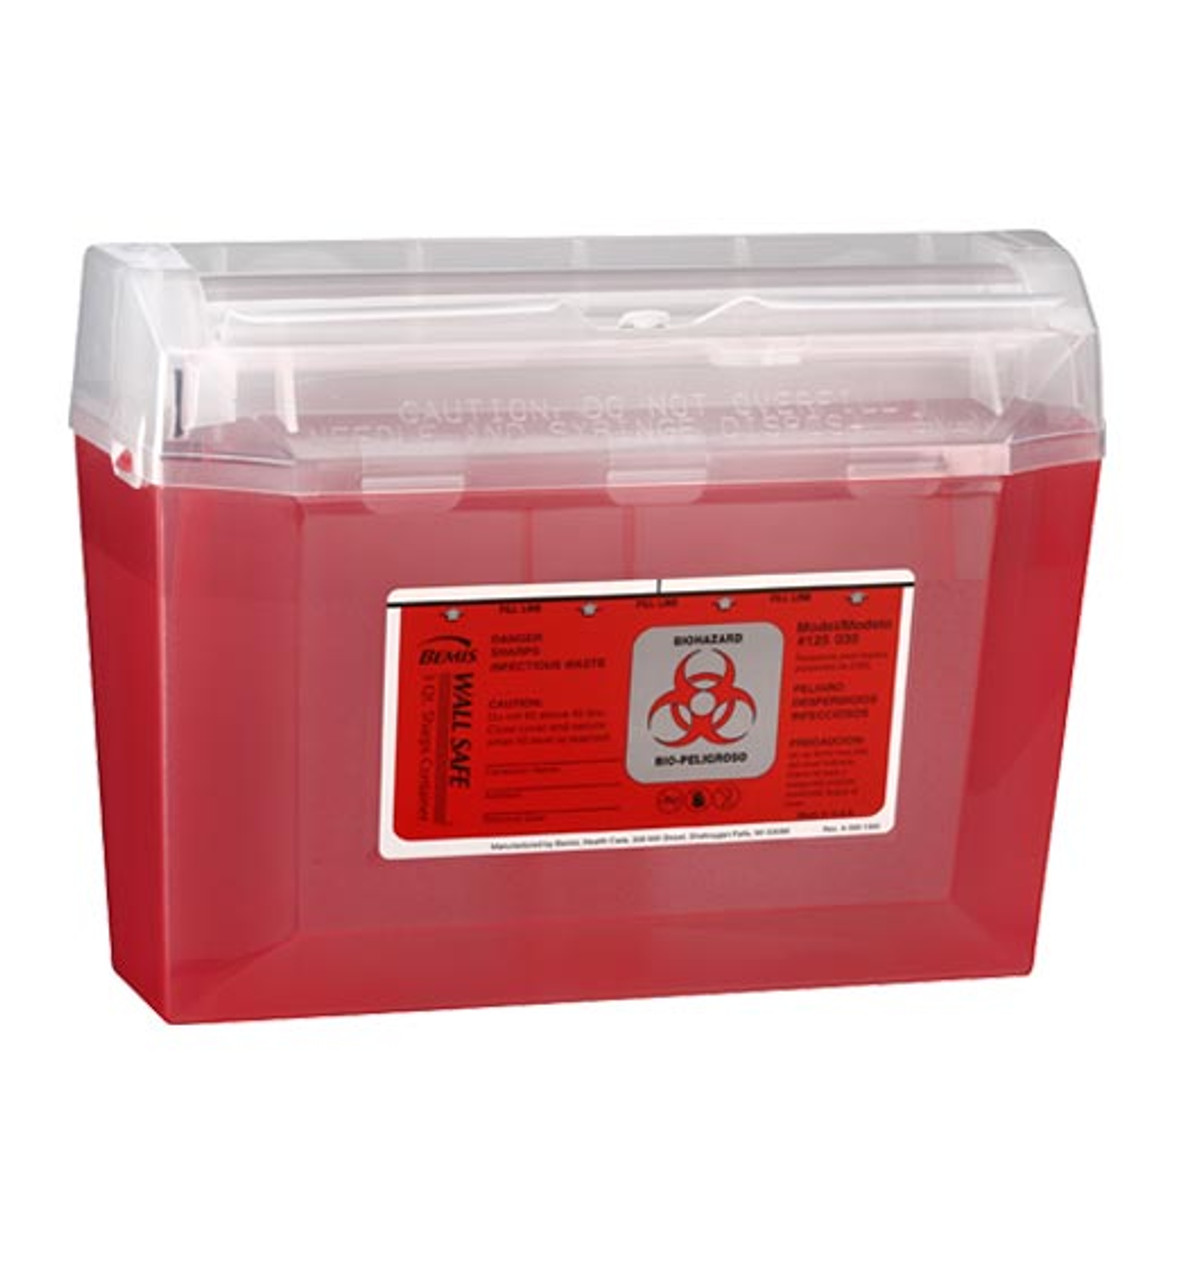 3 Quart Sharps Container #125-030  by Bemis